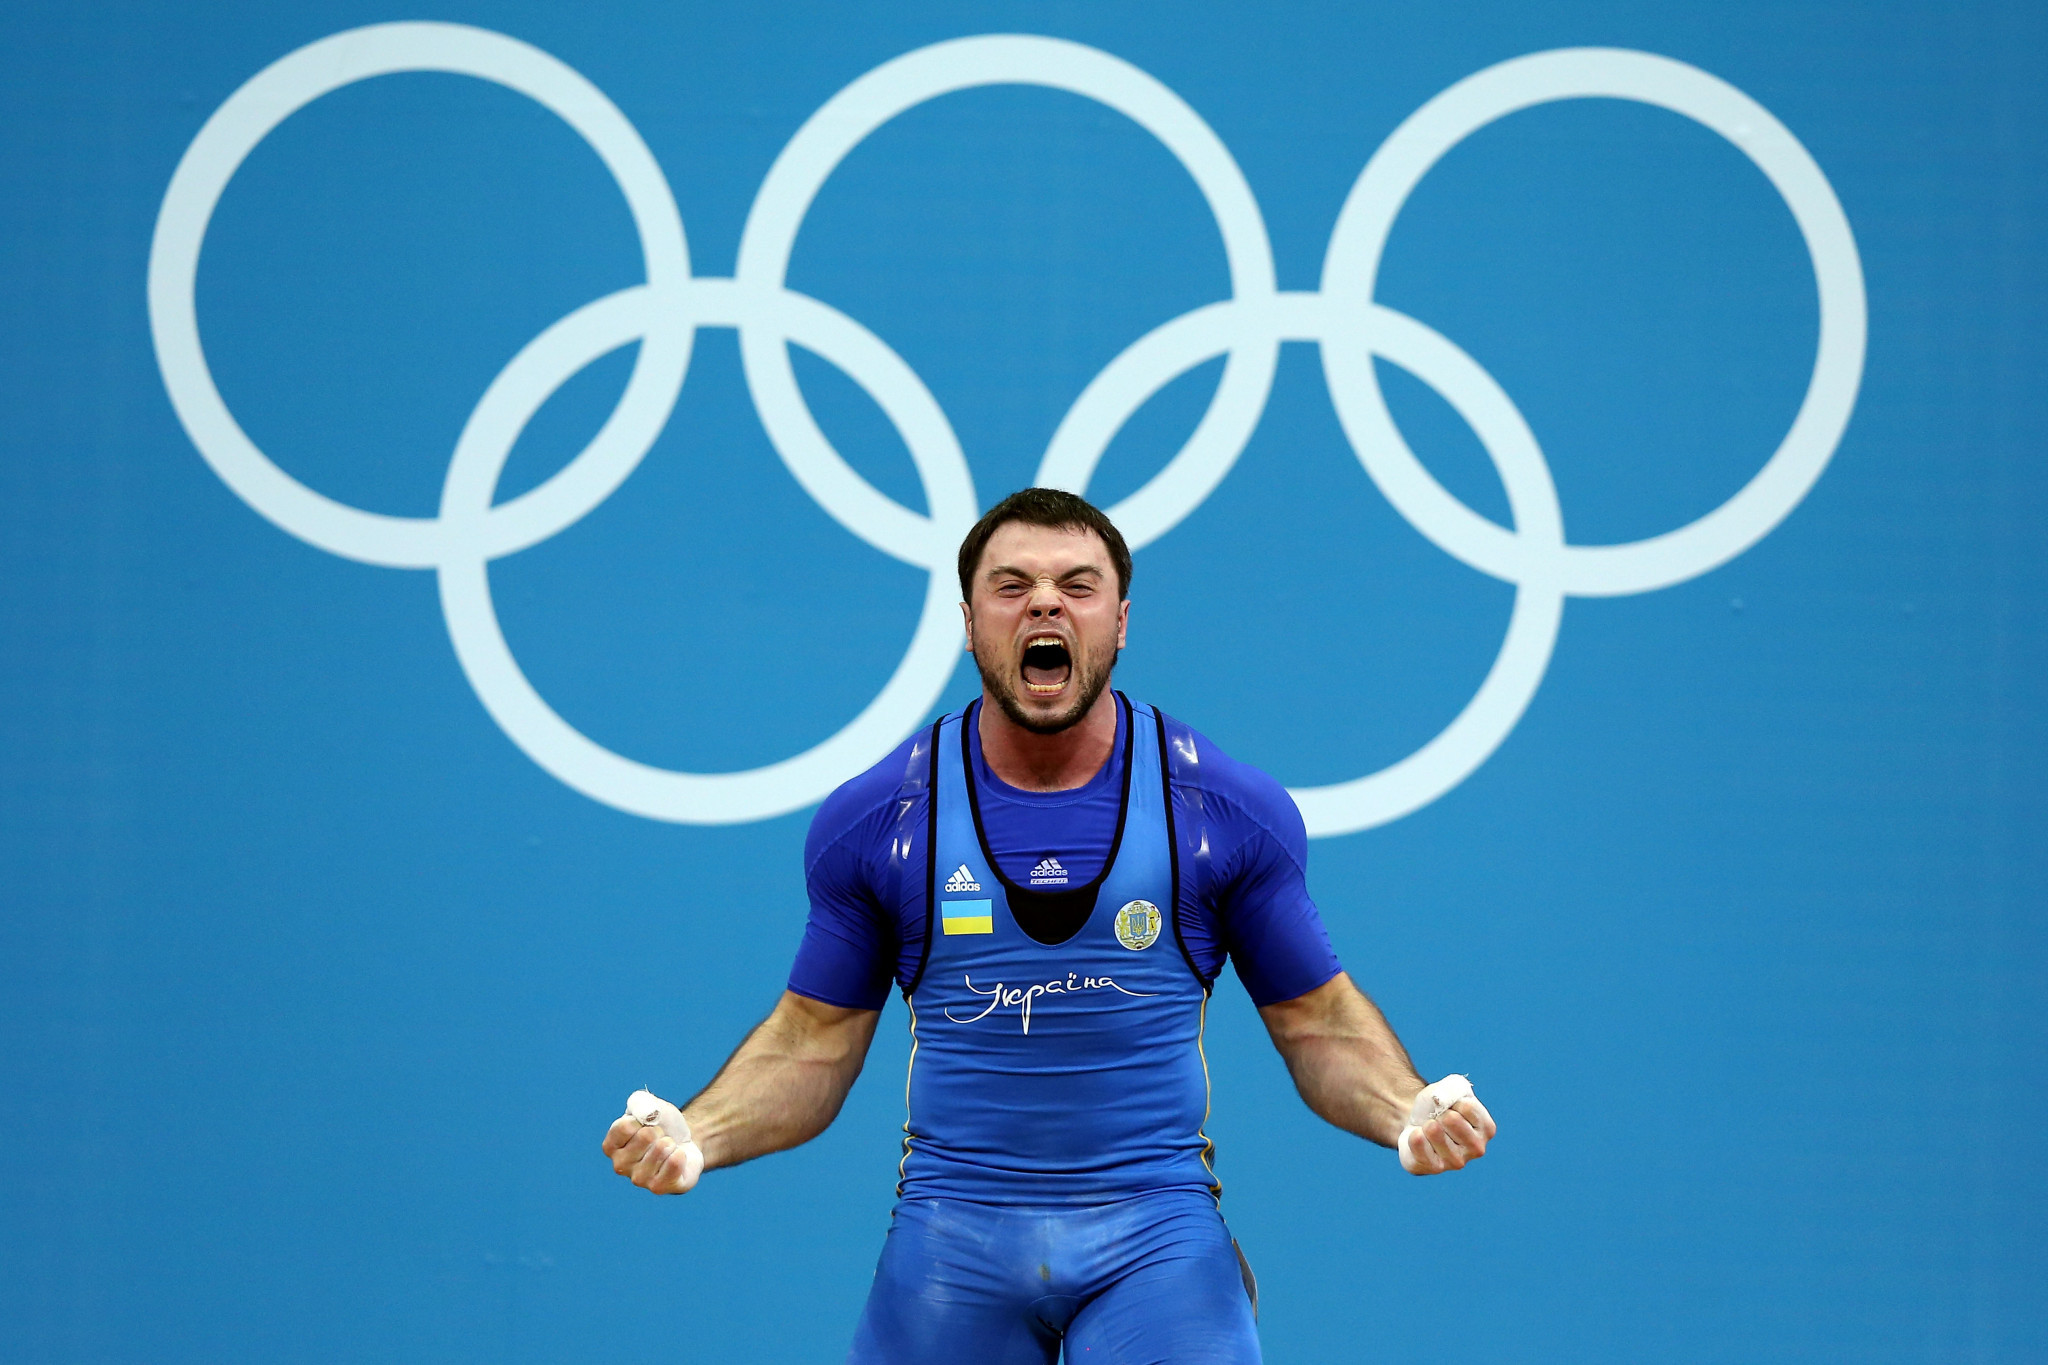 Five weightlifters including London 2012 Olympic champion Oleksiy Torokhtiy have been provisionally suspended ©Getty Images